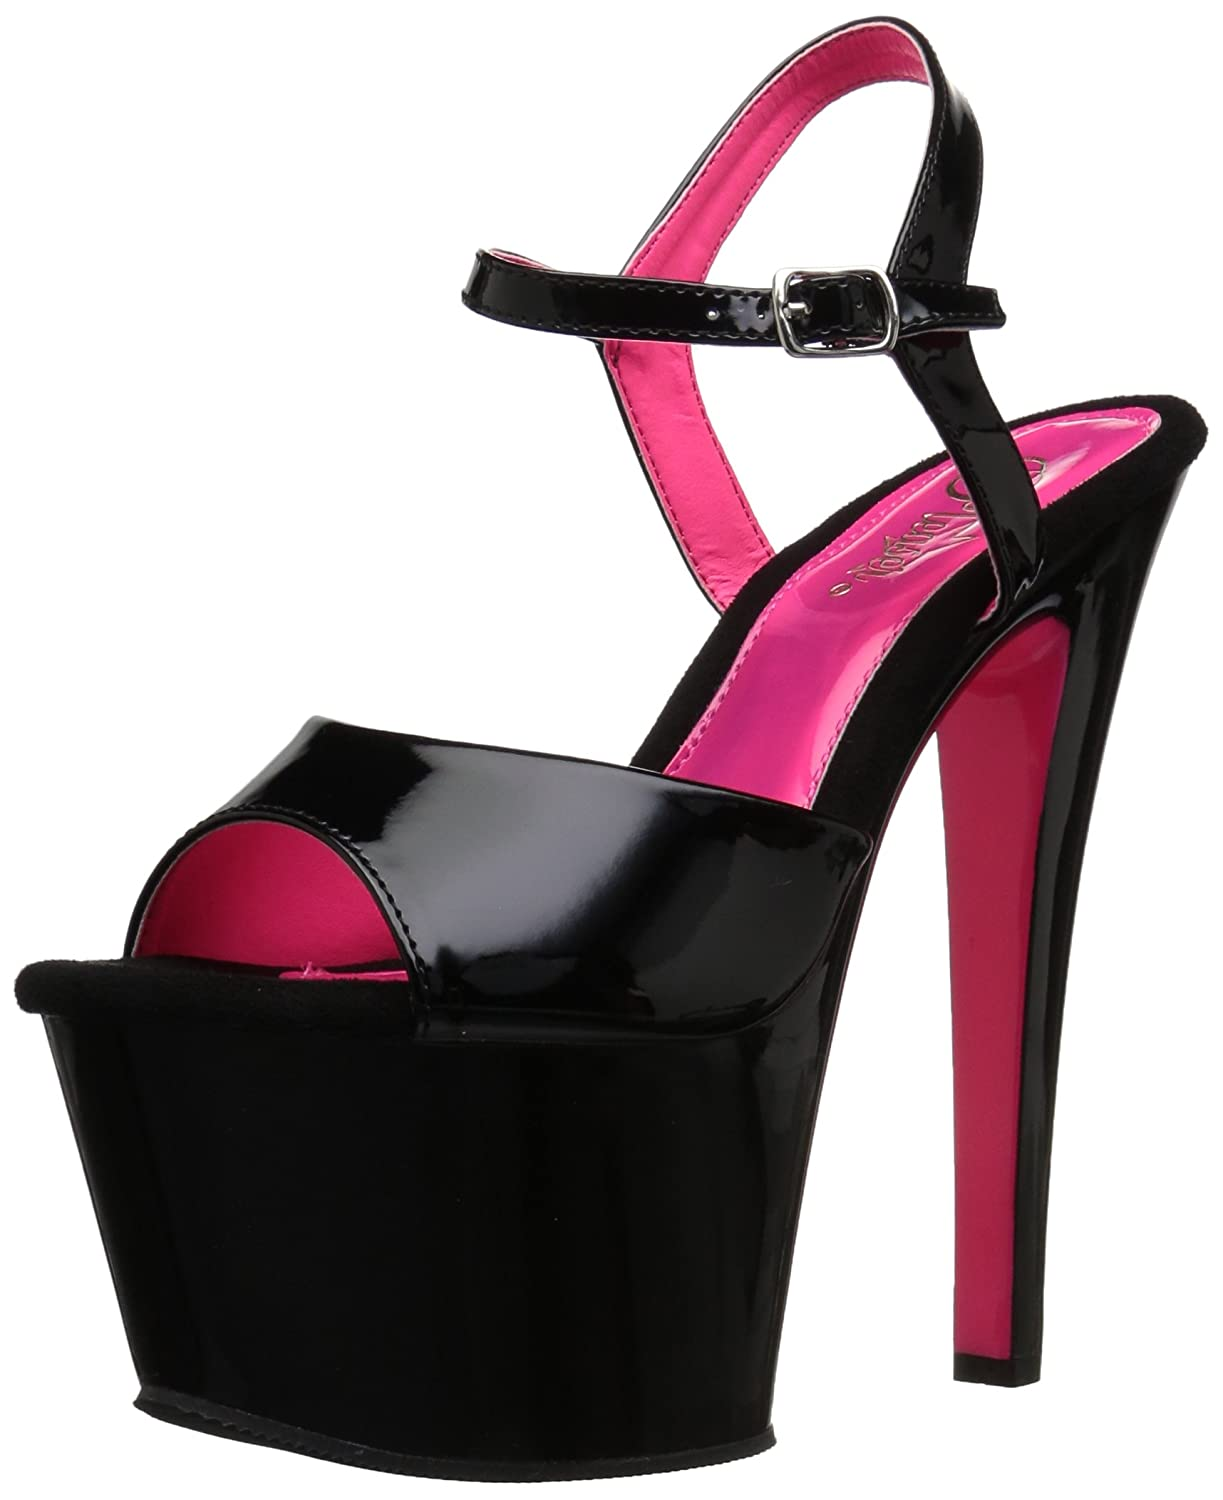 bcef03a7868c Pleaser SKY-309TT  Amazon.co.uk  Shoes   Bags